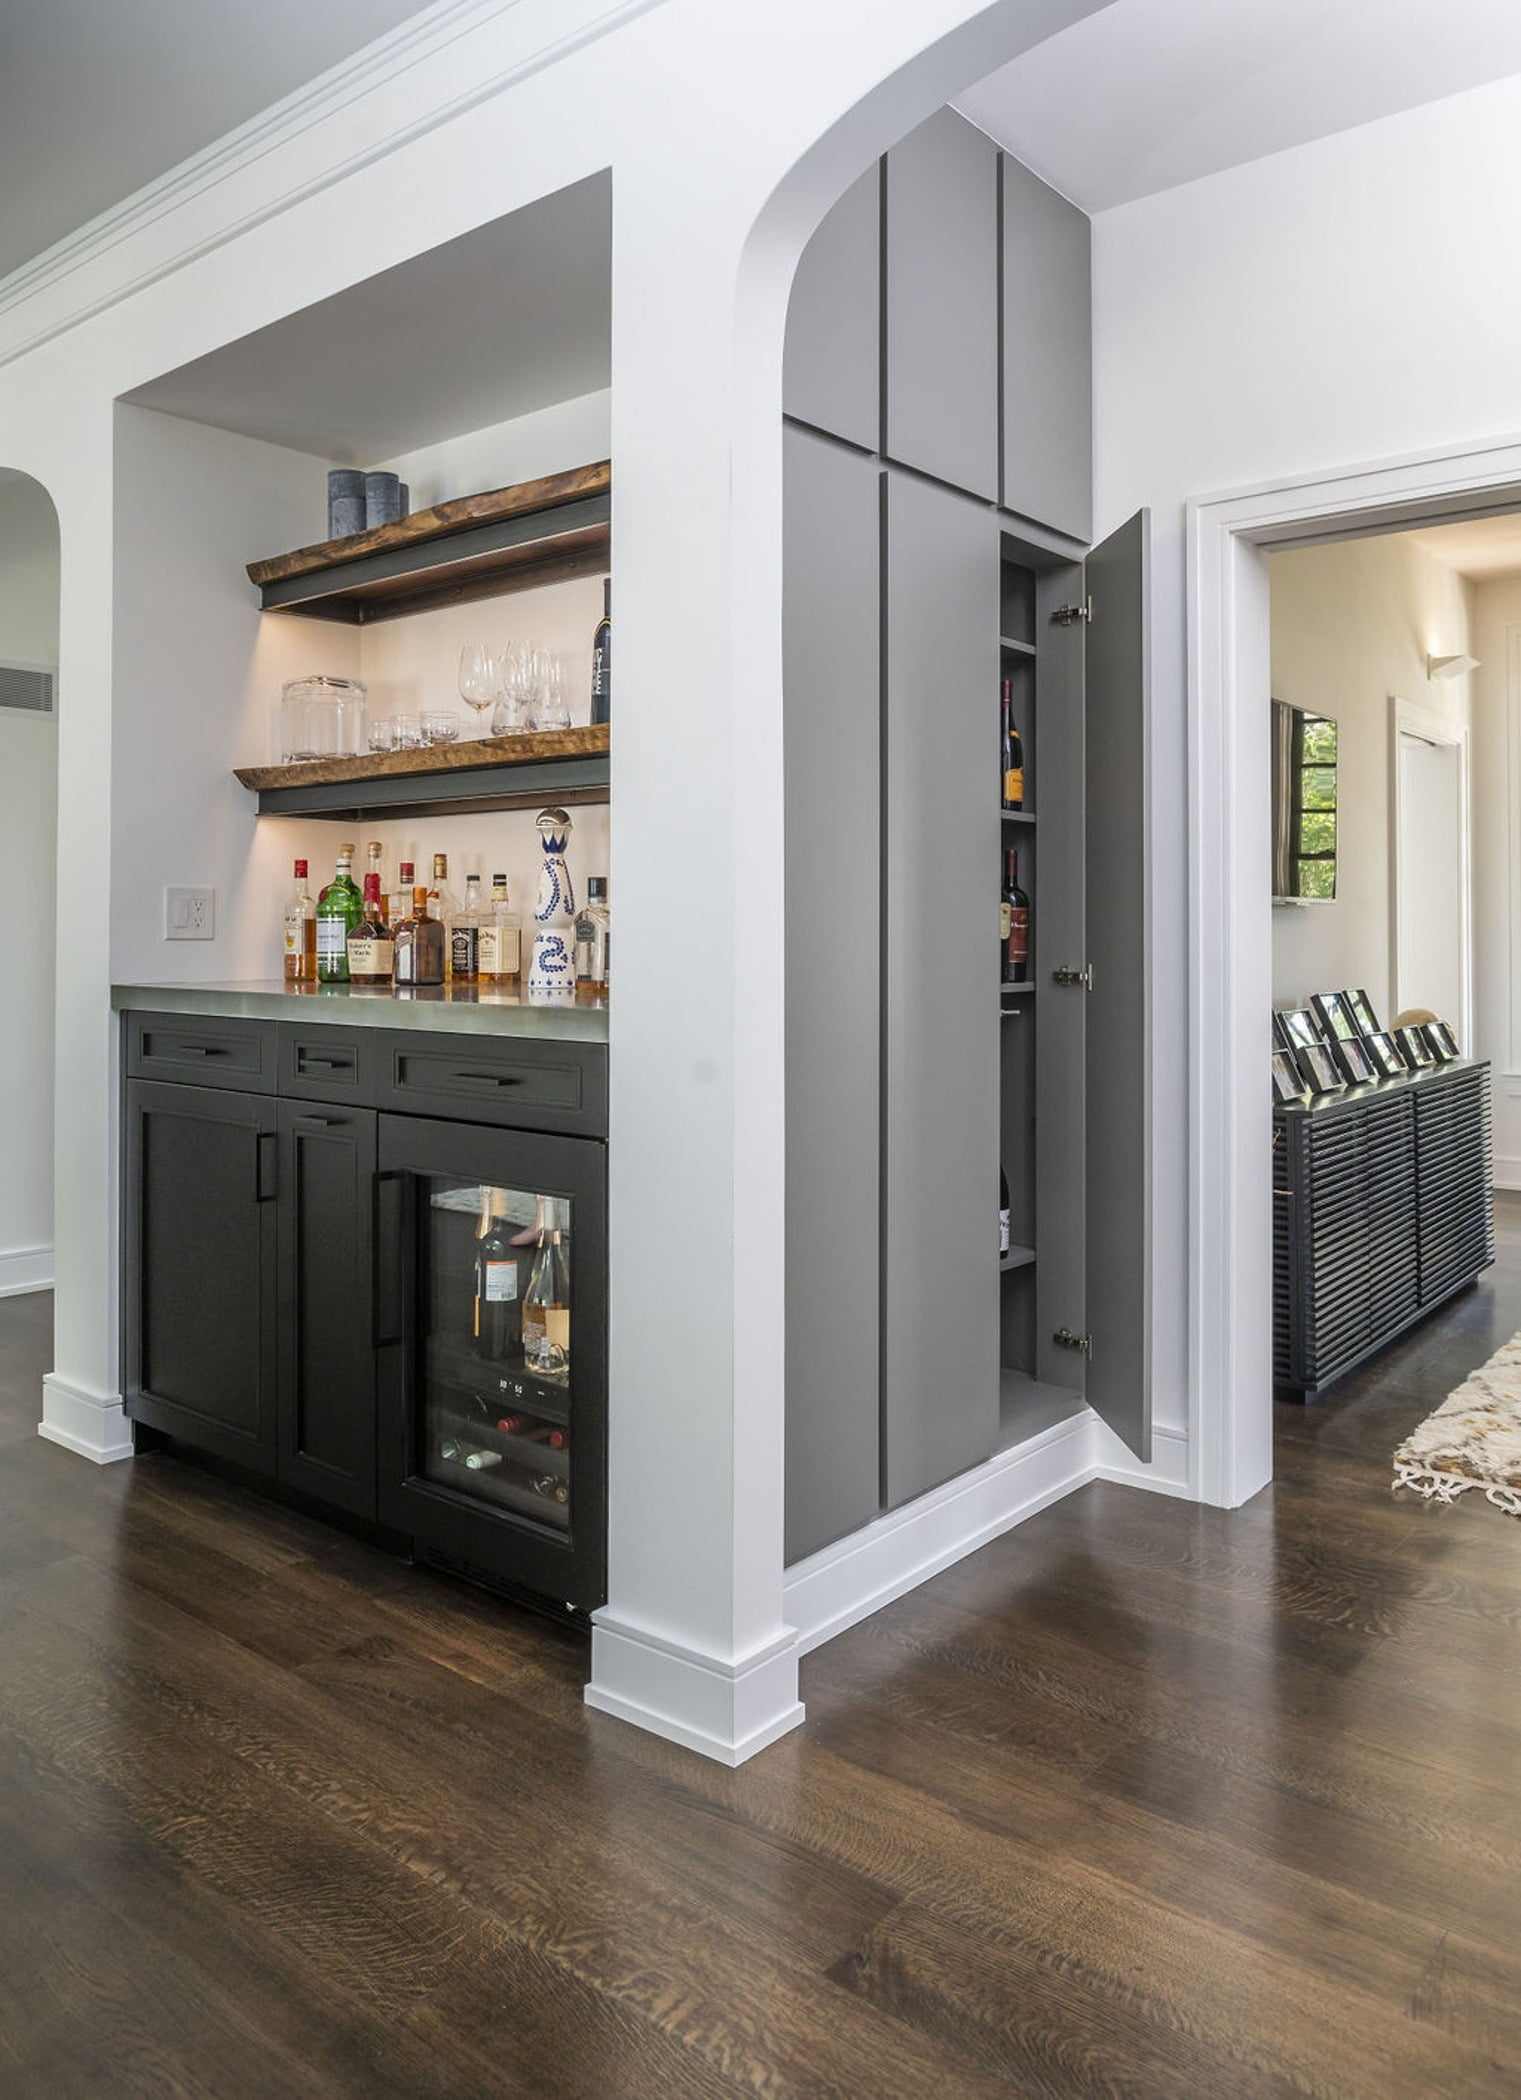 Living room and kitchen space with built in wall cabinetry and a custom, built-in bar